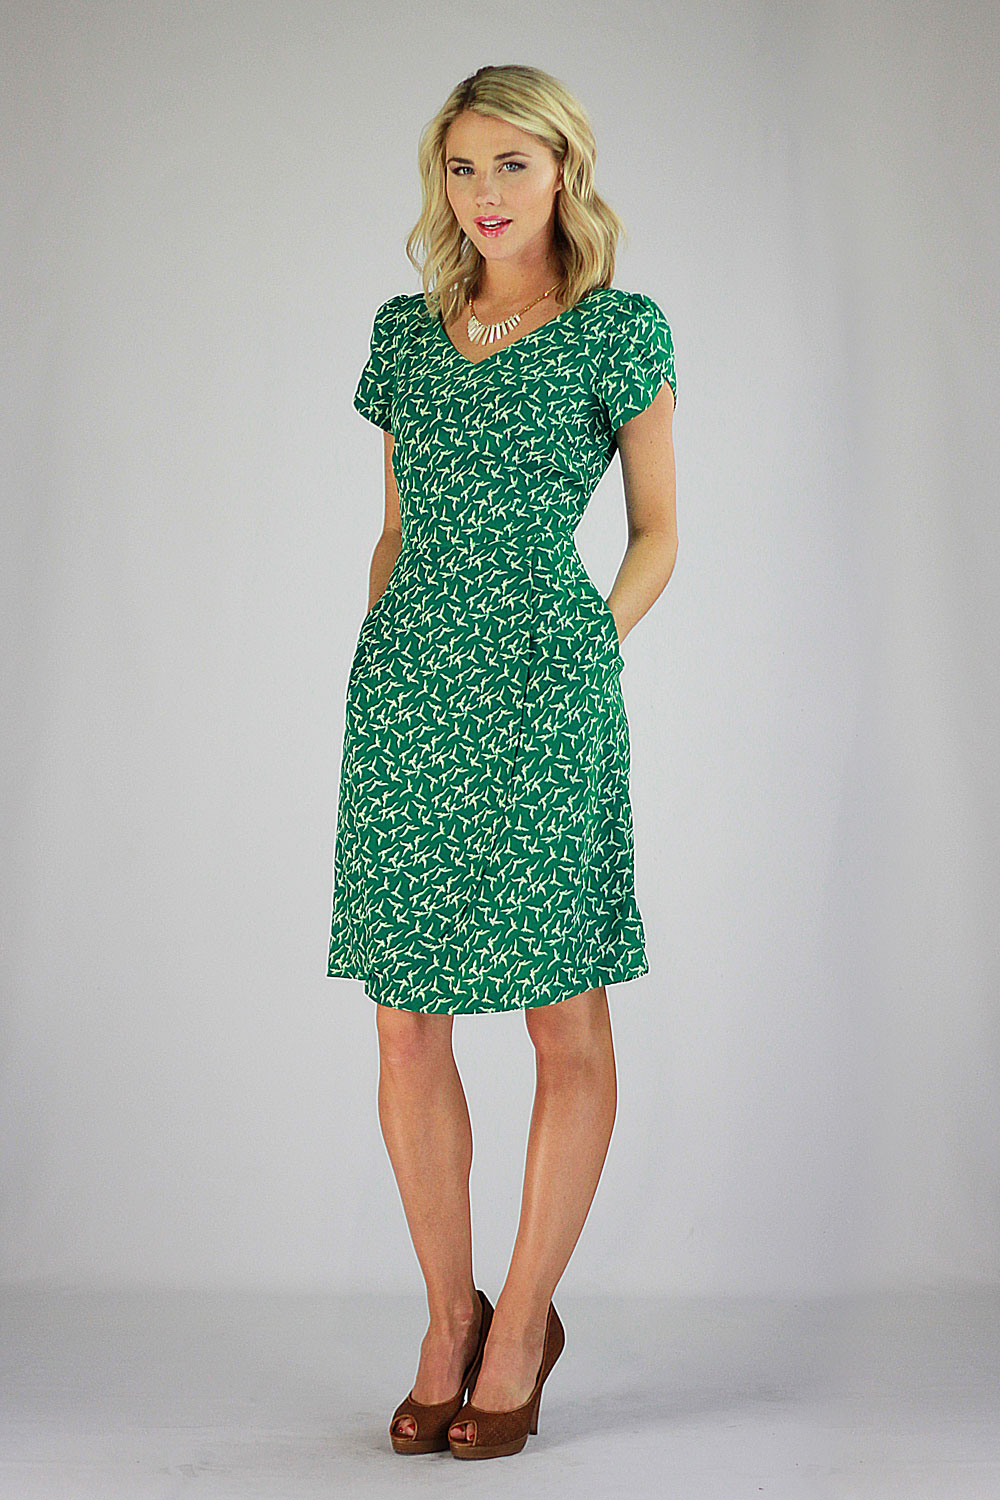 Modest Dresses in Green Bird Print